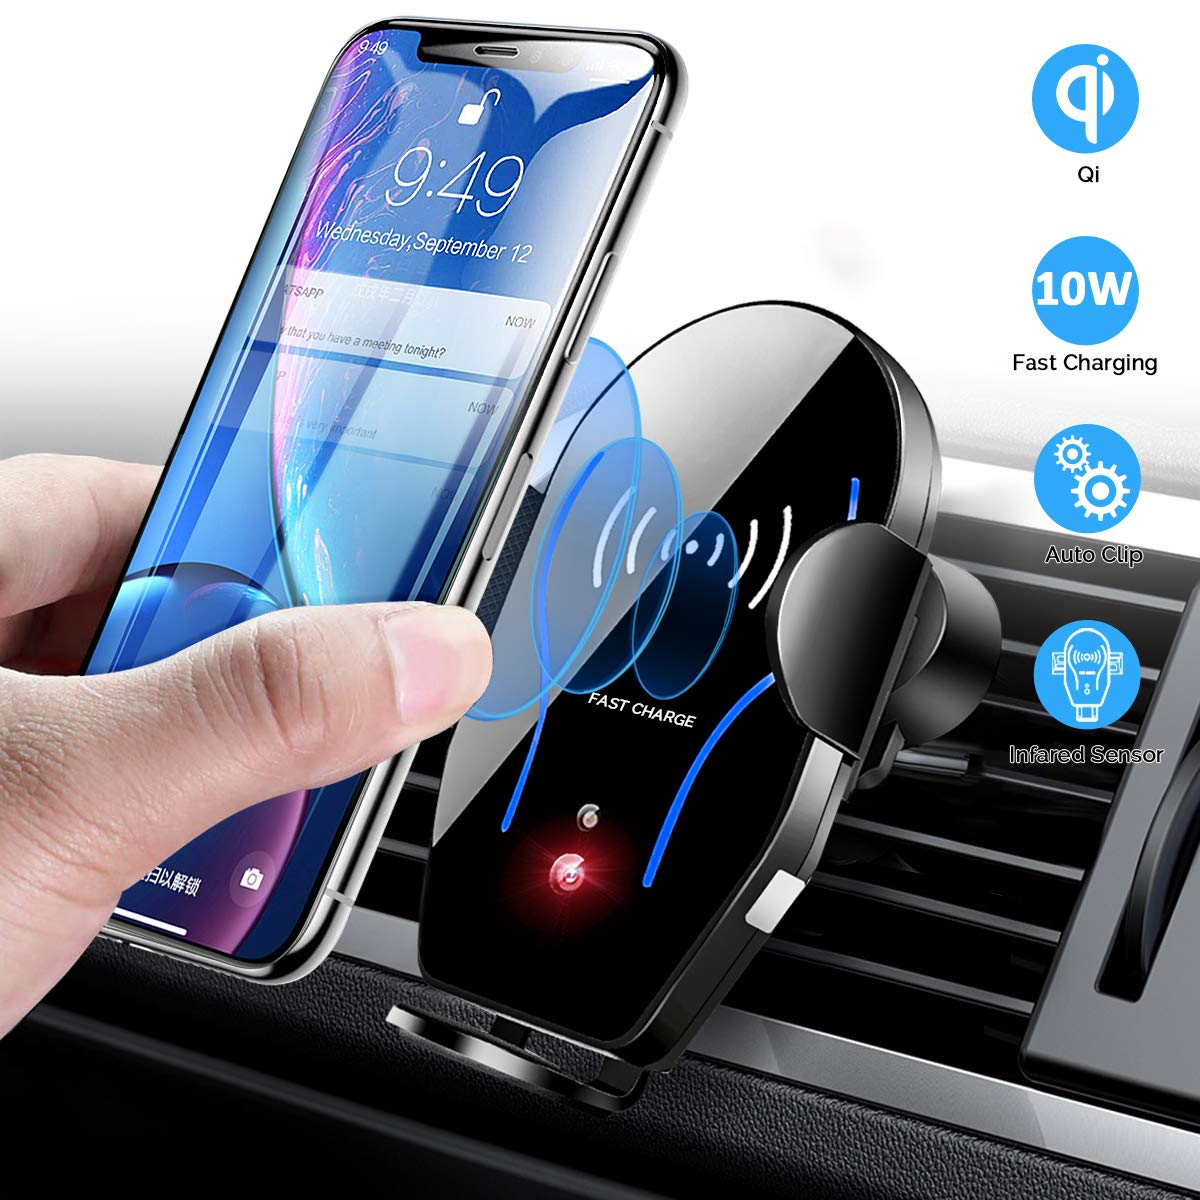 Wireless Car Charger Mount, Mikikin Auto-Clamping Qi 10W 7.5W Fast Charging Car Phone Holder Air Vent Compatible with iPhone X/XR/Xs/Xs Max/8/8 Plus, Samsung S6/S7/S8/S9 Edge+, Note 7/Note 8 & More by Mikikin